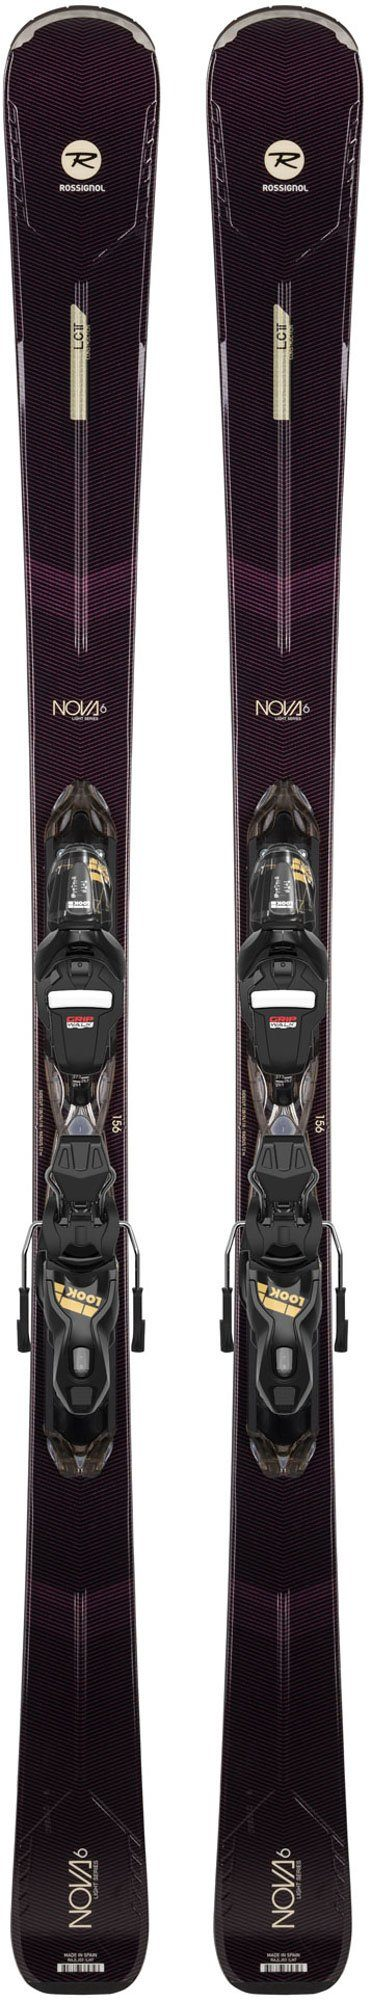 ROSSIGNOL WOMEN'S NOVA 6 SKI with EXPRESS W 11 GW B83 BINDING